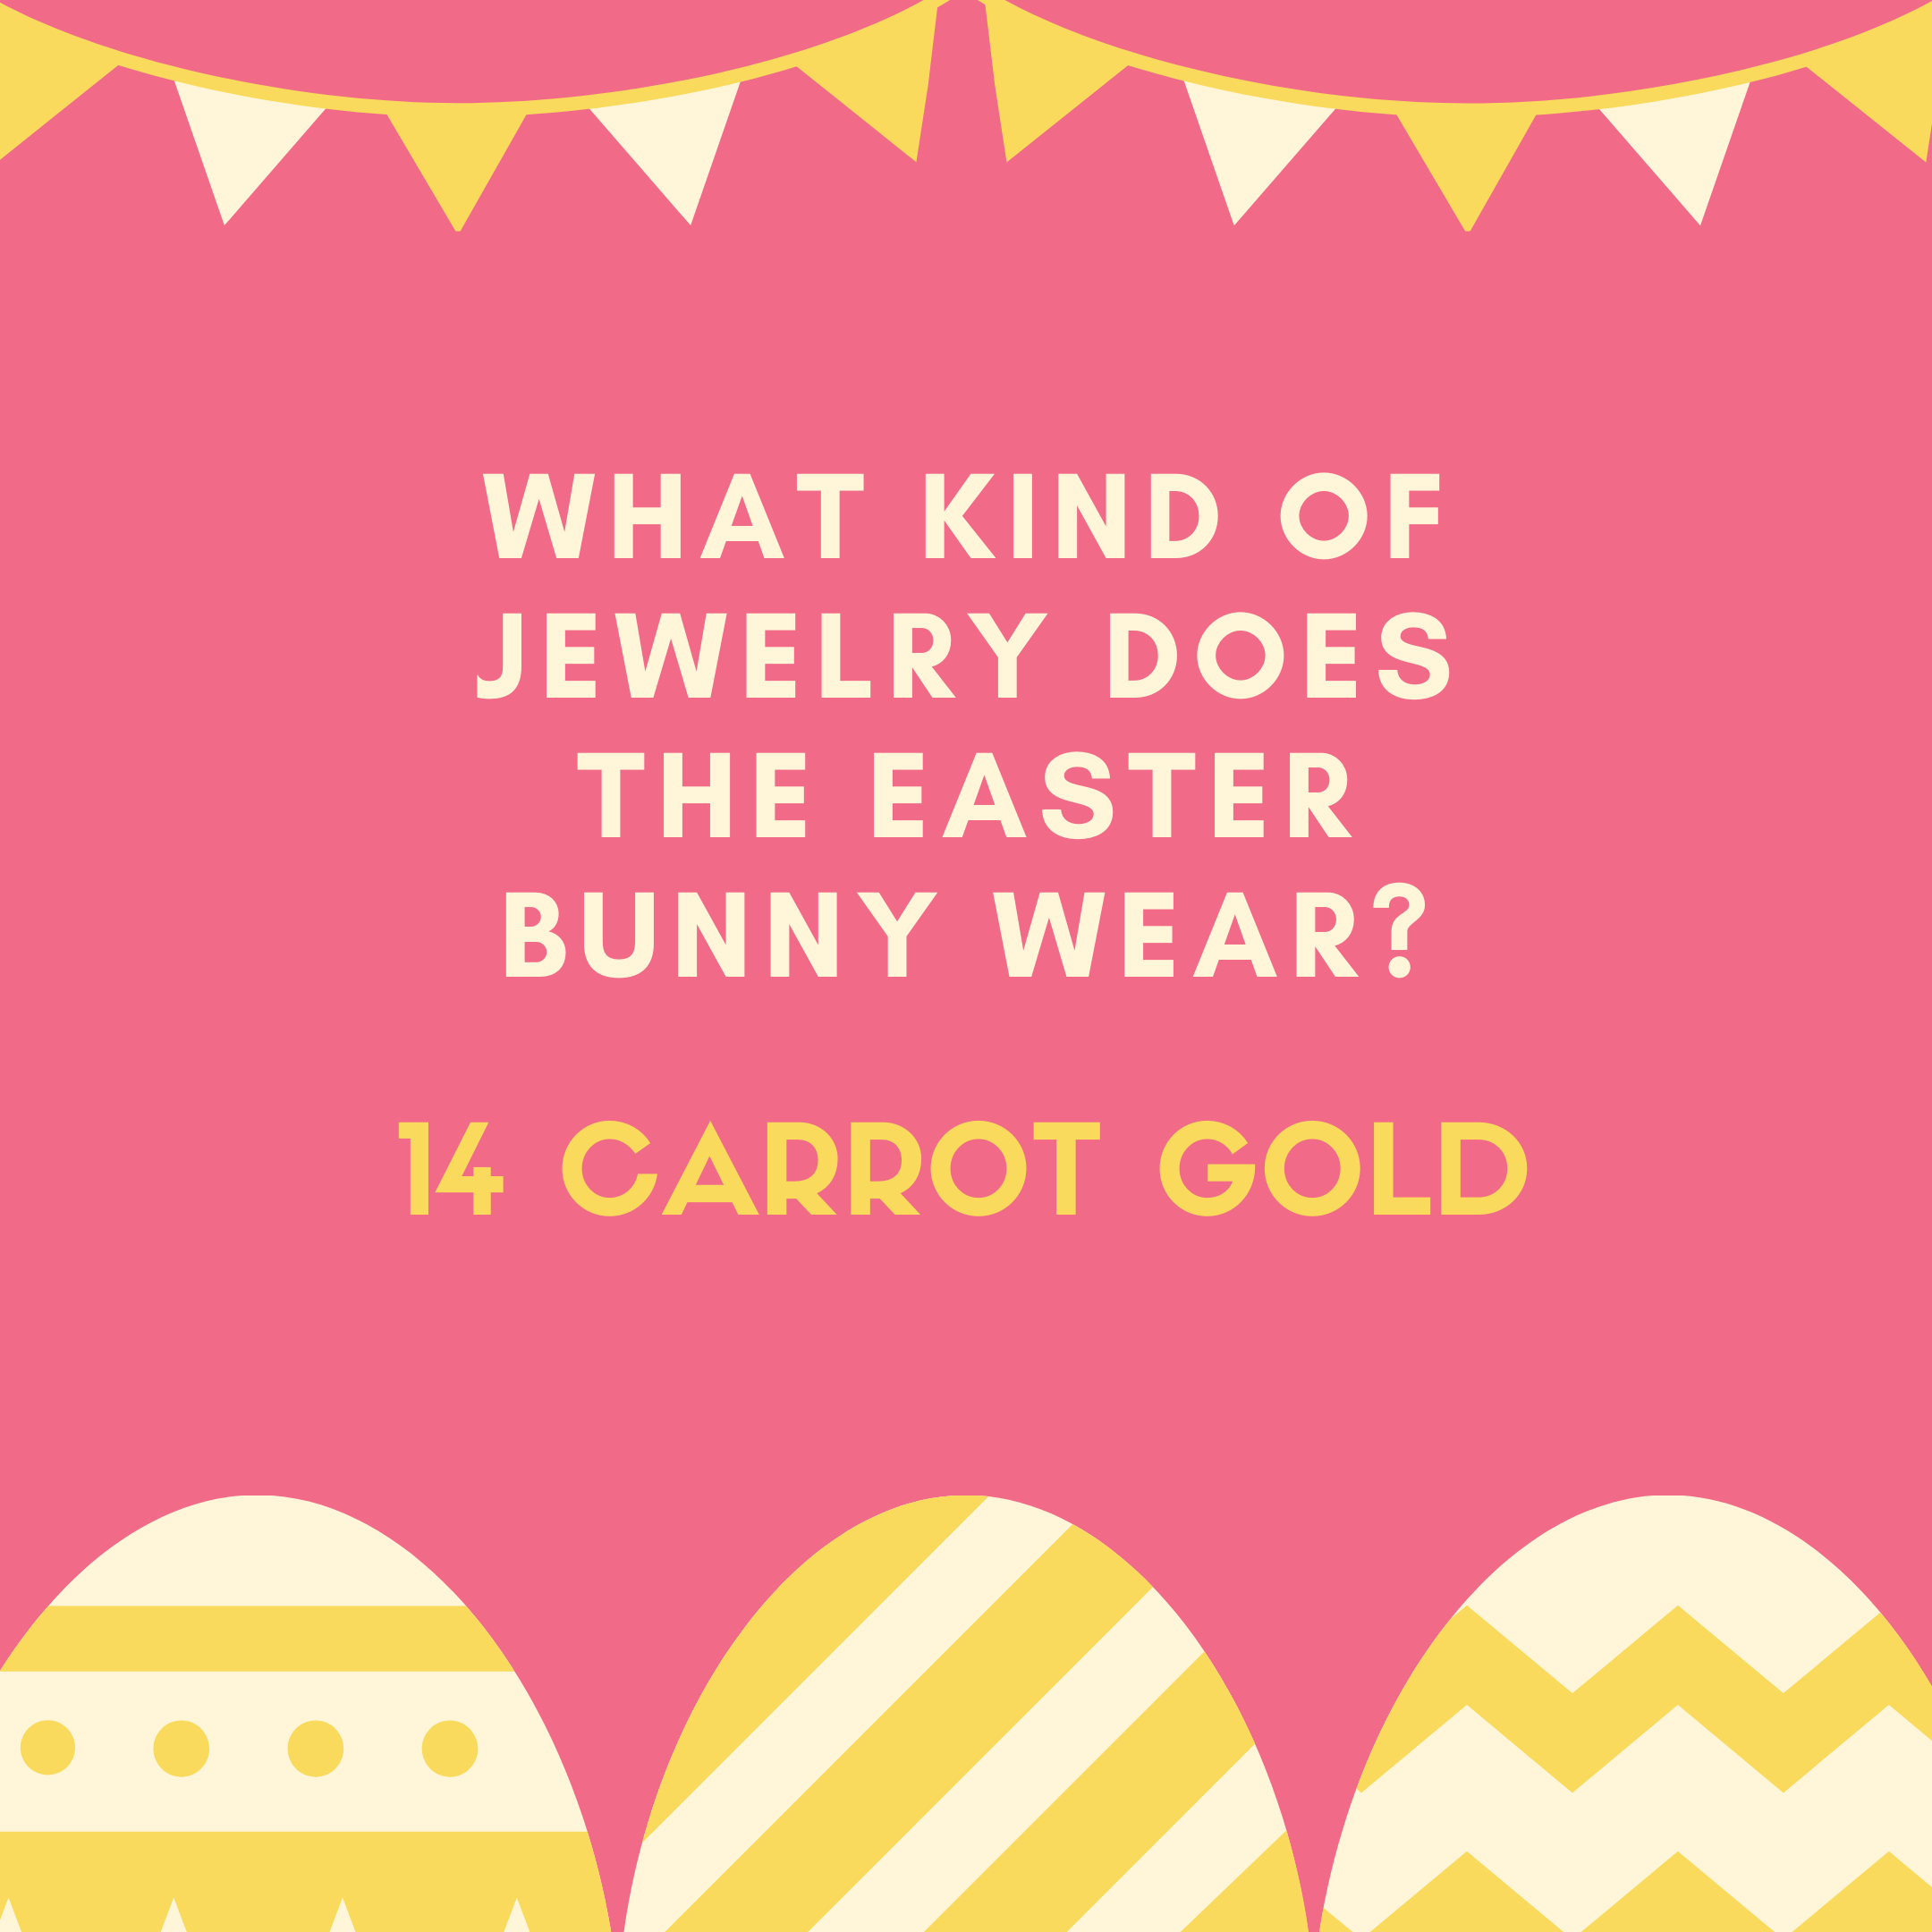 What kind of jewelry does the Easter Bunny wear? 14 Carrot Gold